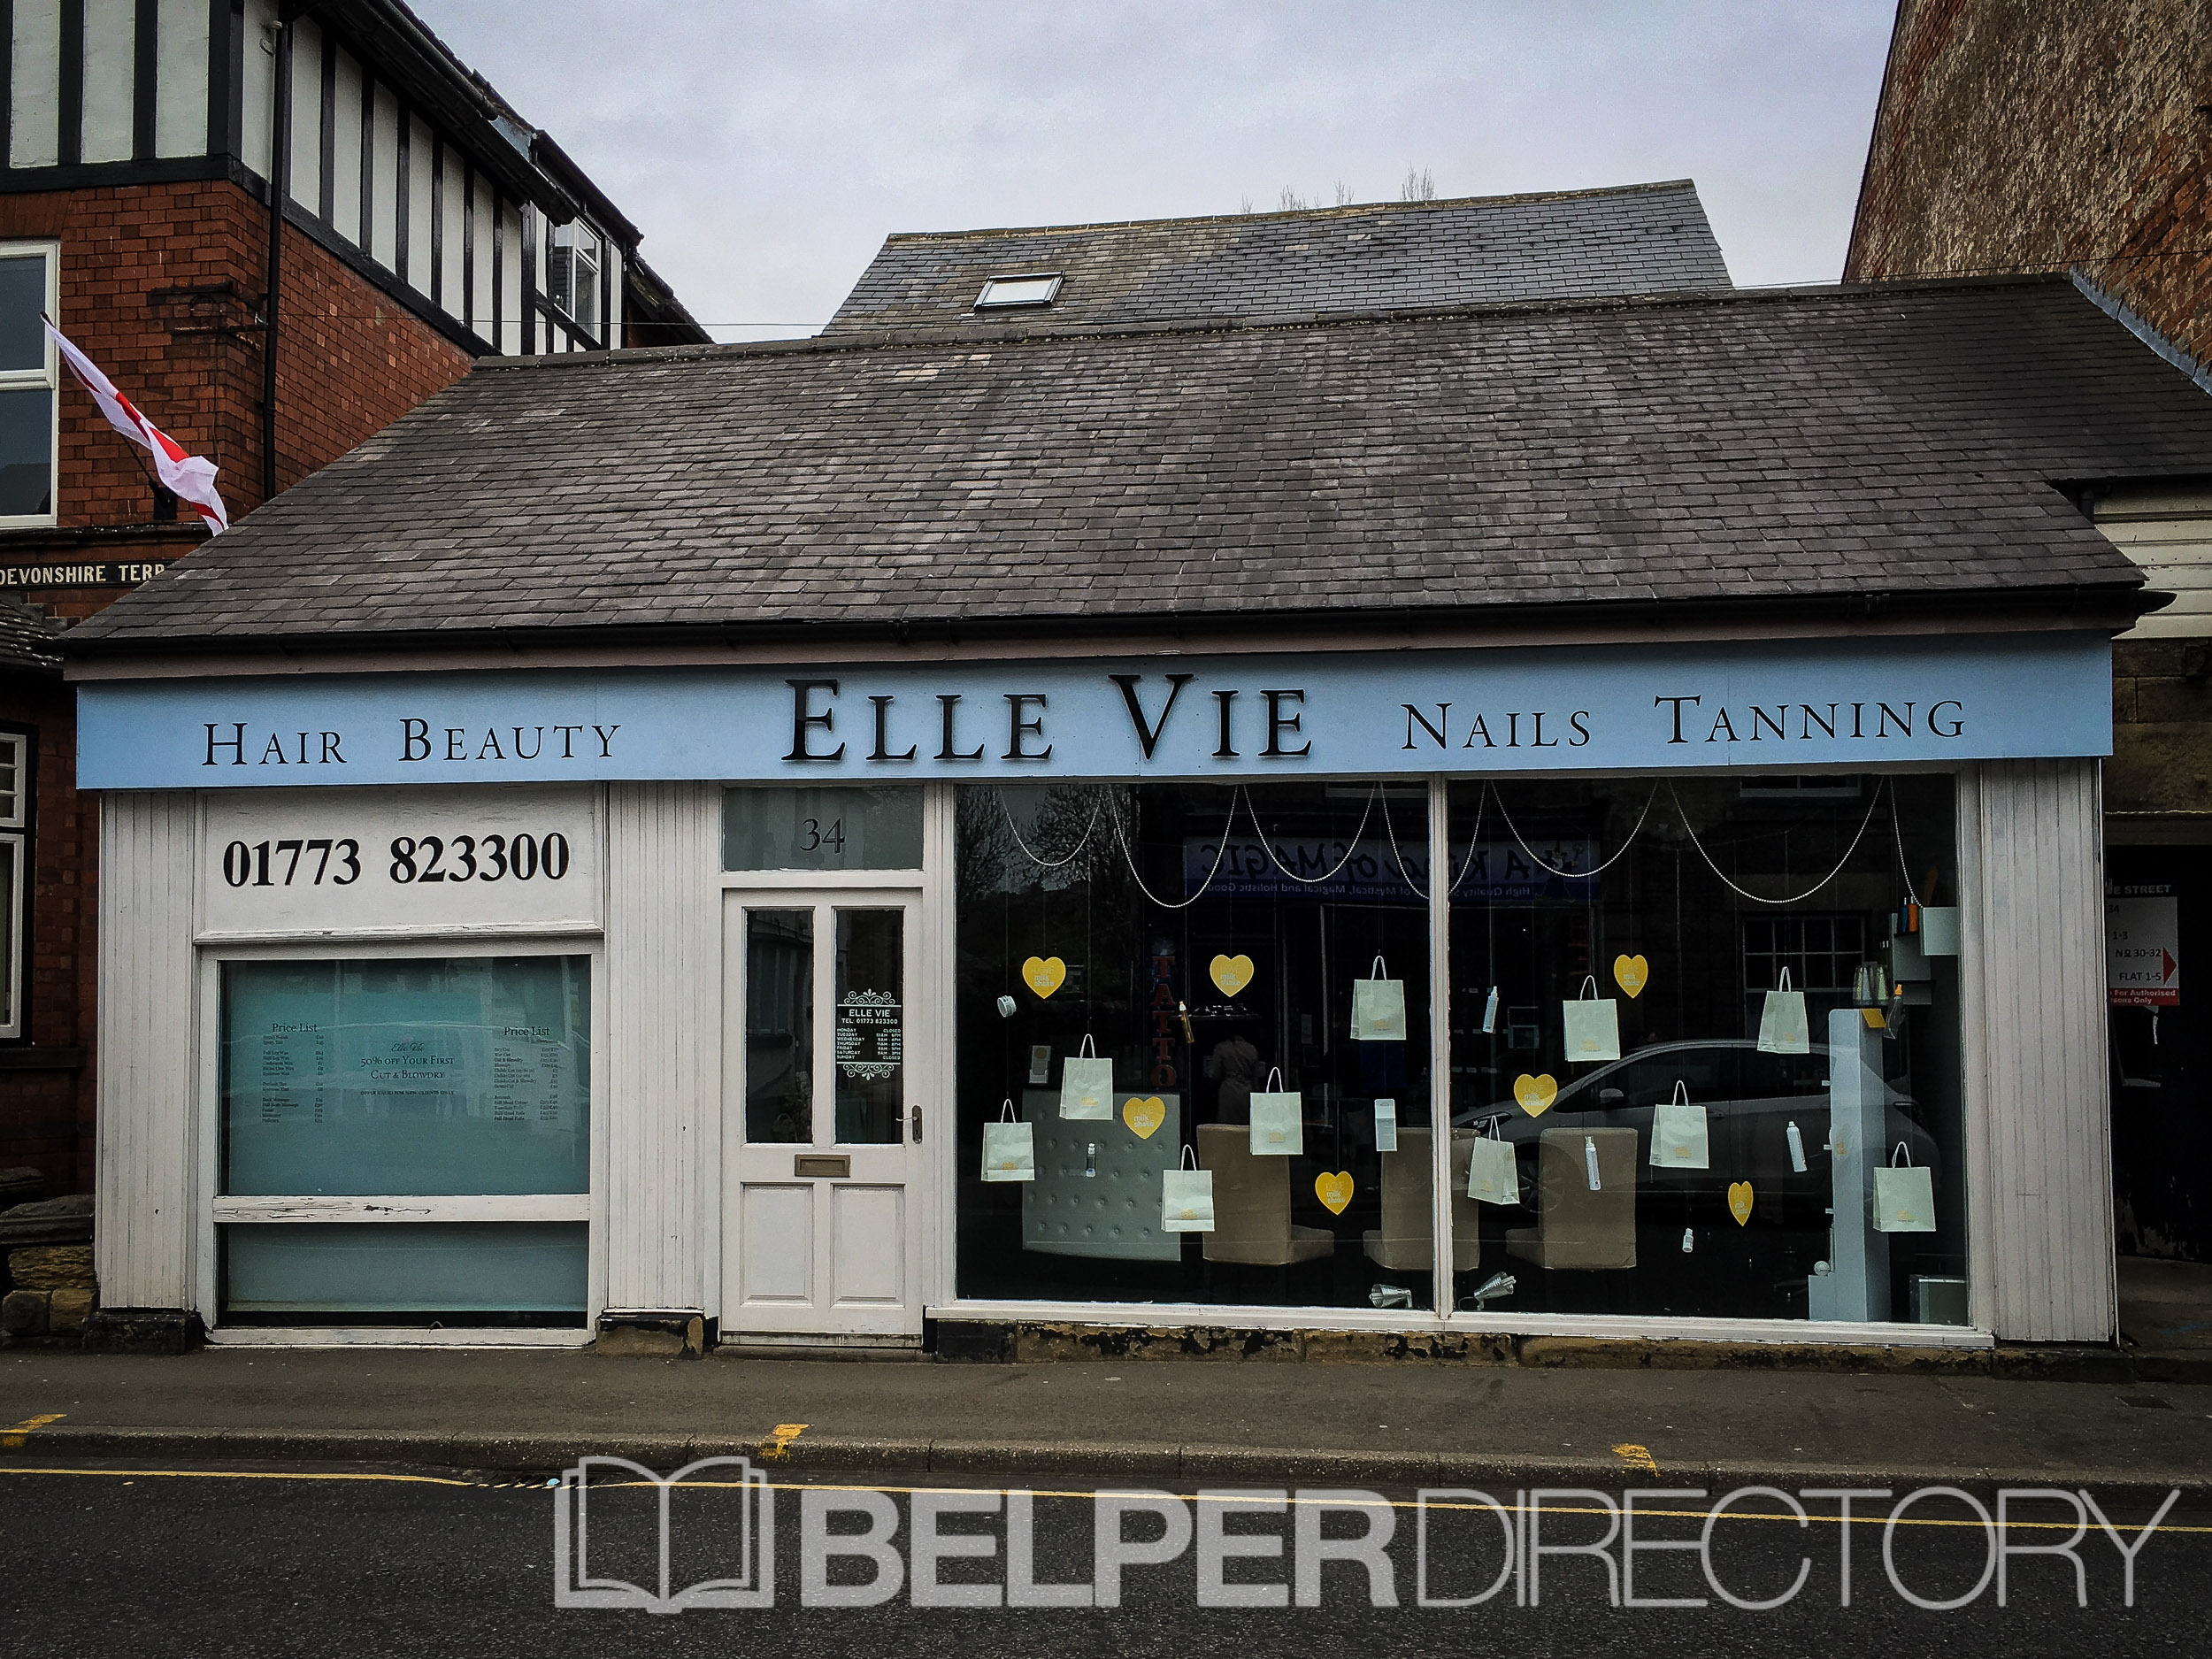 Belper Directory- Elle Vie Nails and Tanning.jpg